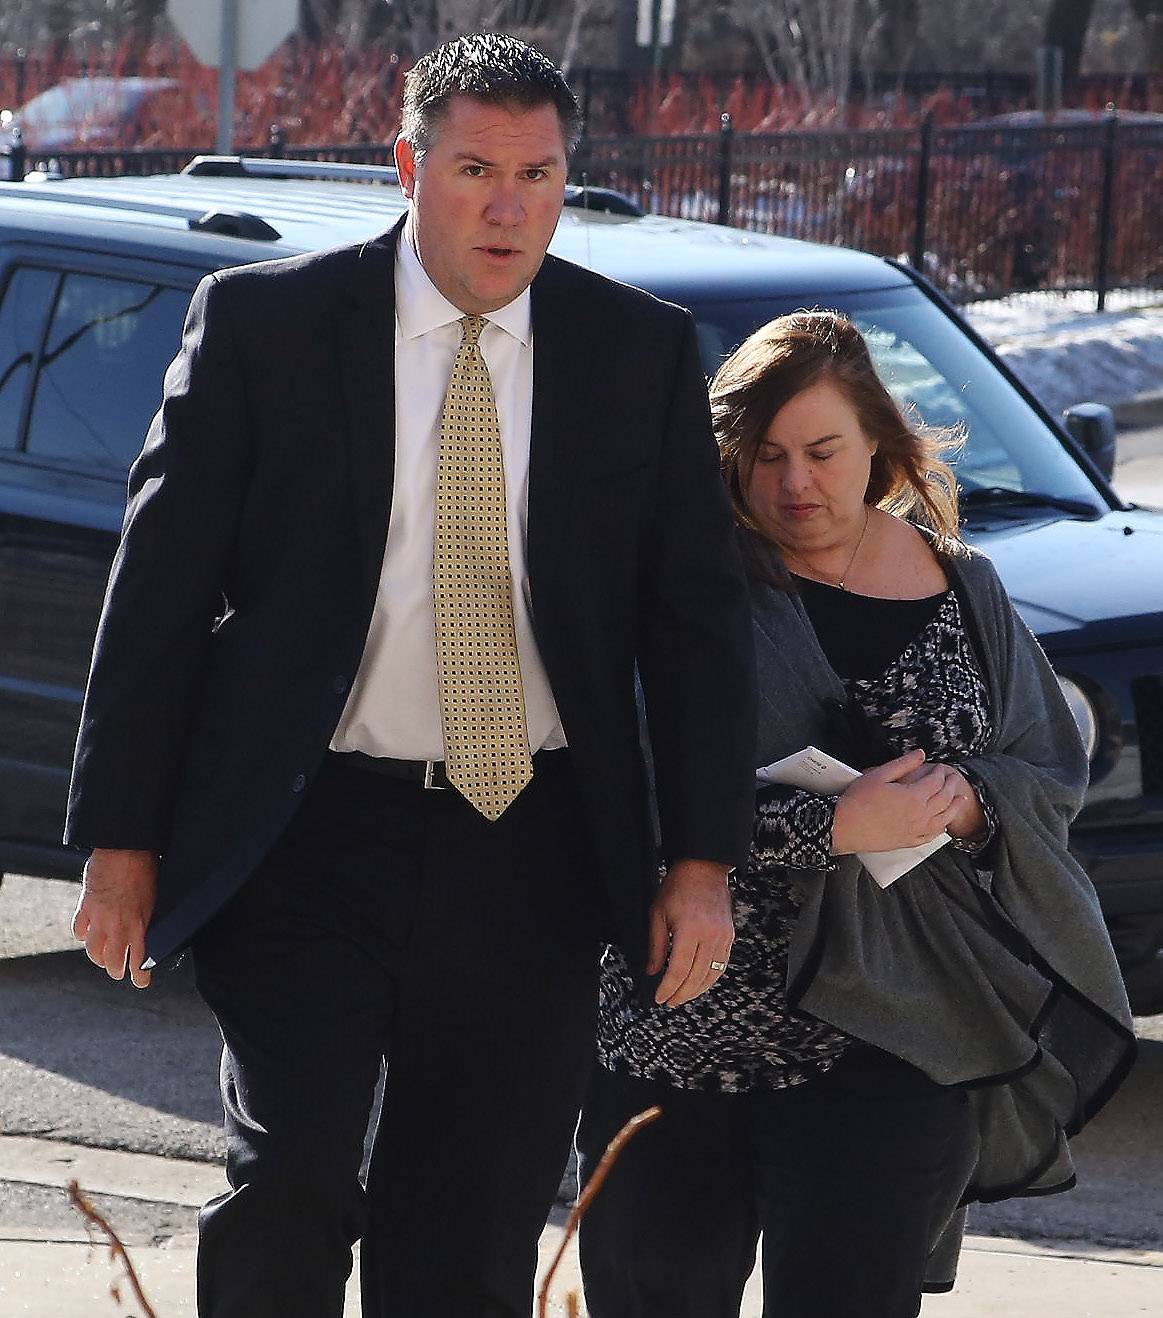 Melodie Gliniewicz walks into the Lake County sheriff's office with her attorney, Donald Morrison, after she was indicted by a grand jury Wednesday in Waukegan.